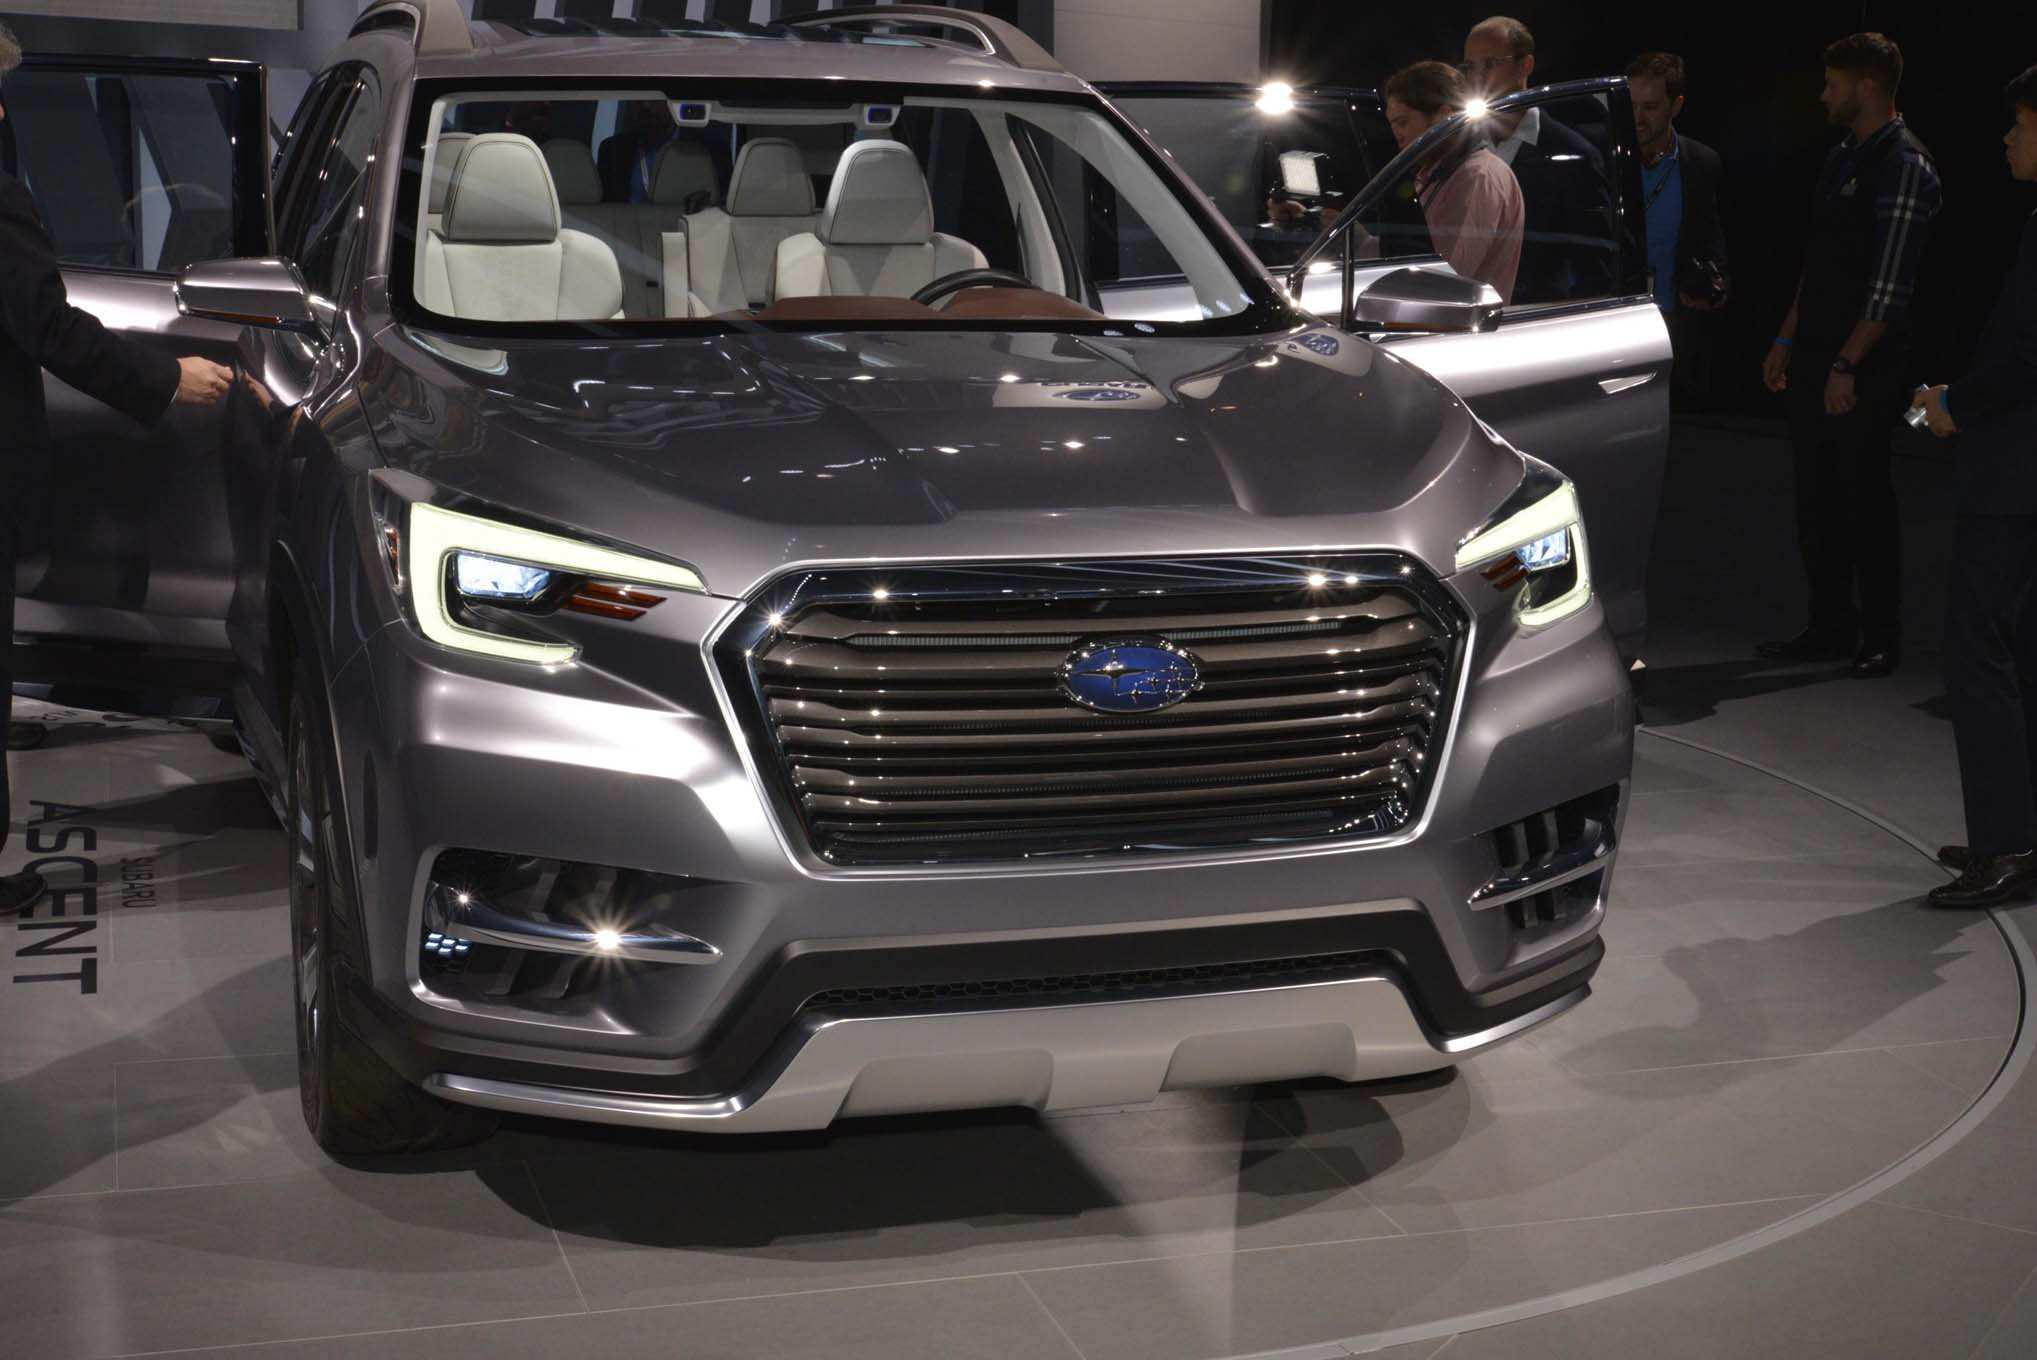 42 New Subaru Ascent 2019 Engine Specs with Subaru Ascent 2019 Engine